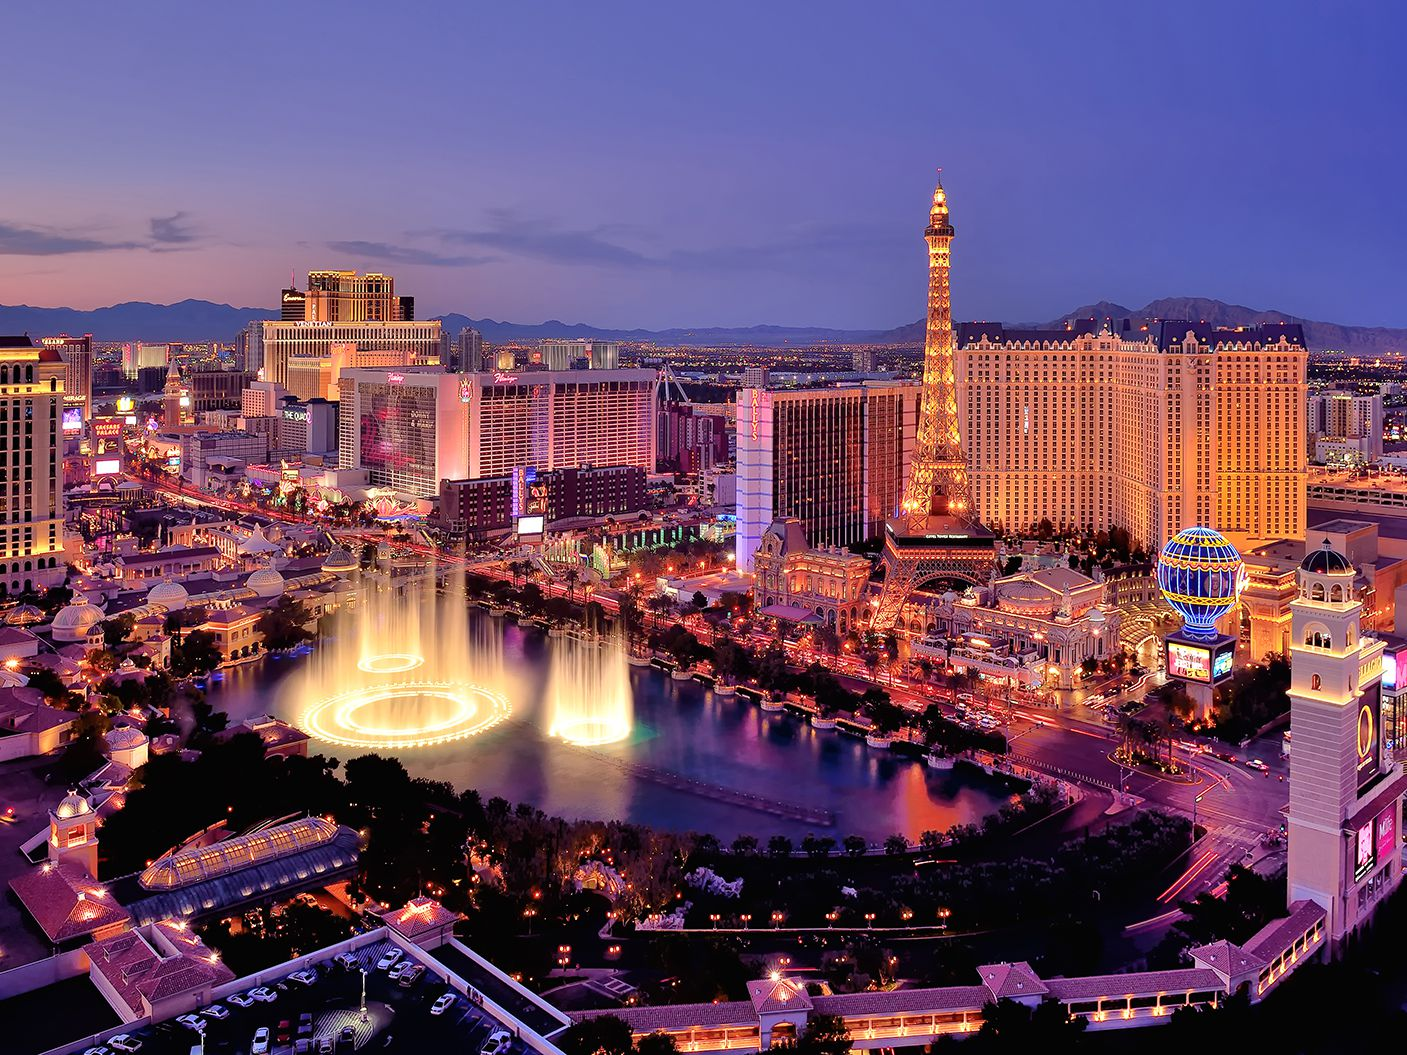 10 Fast Facts about Sin City